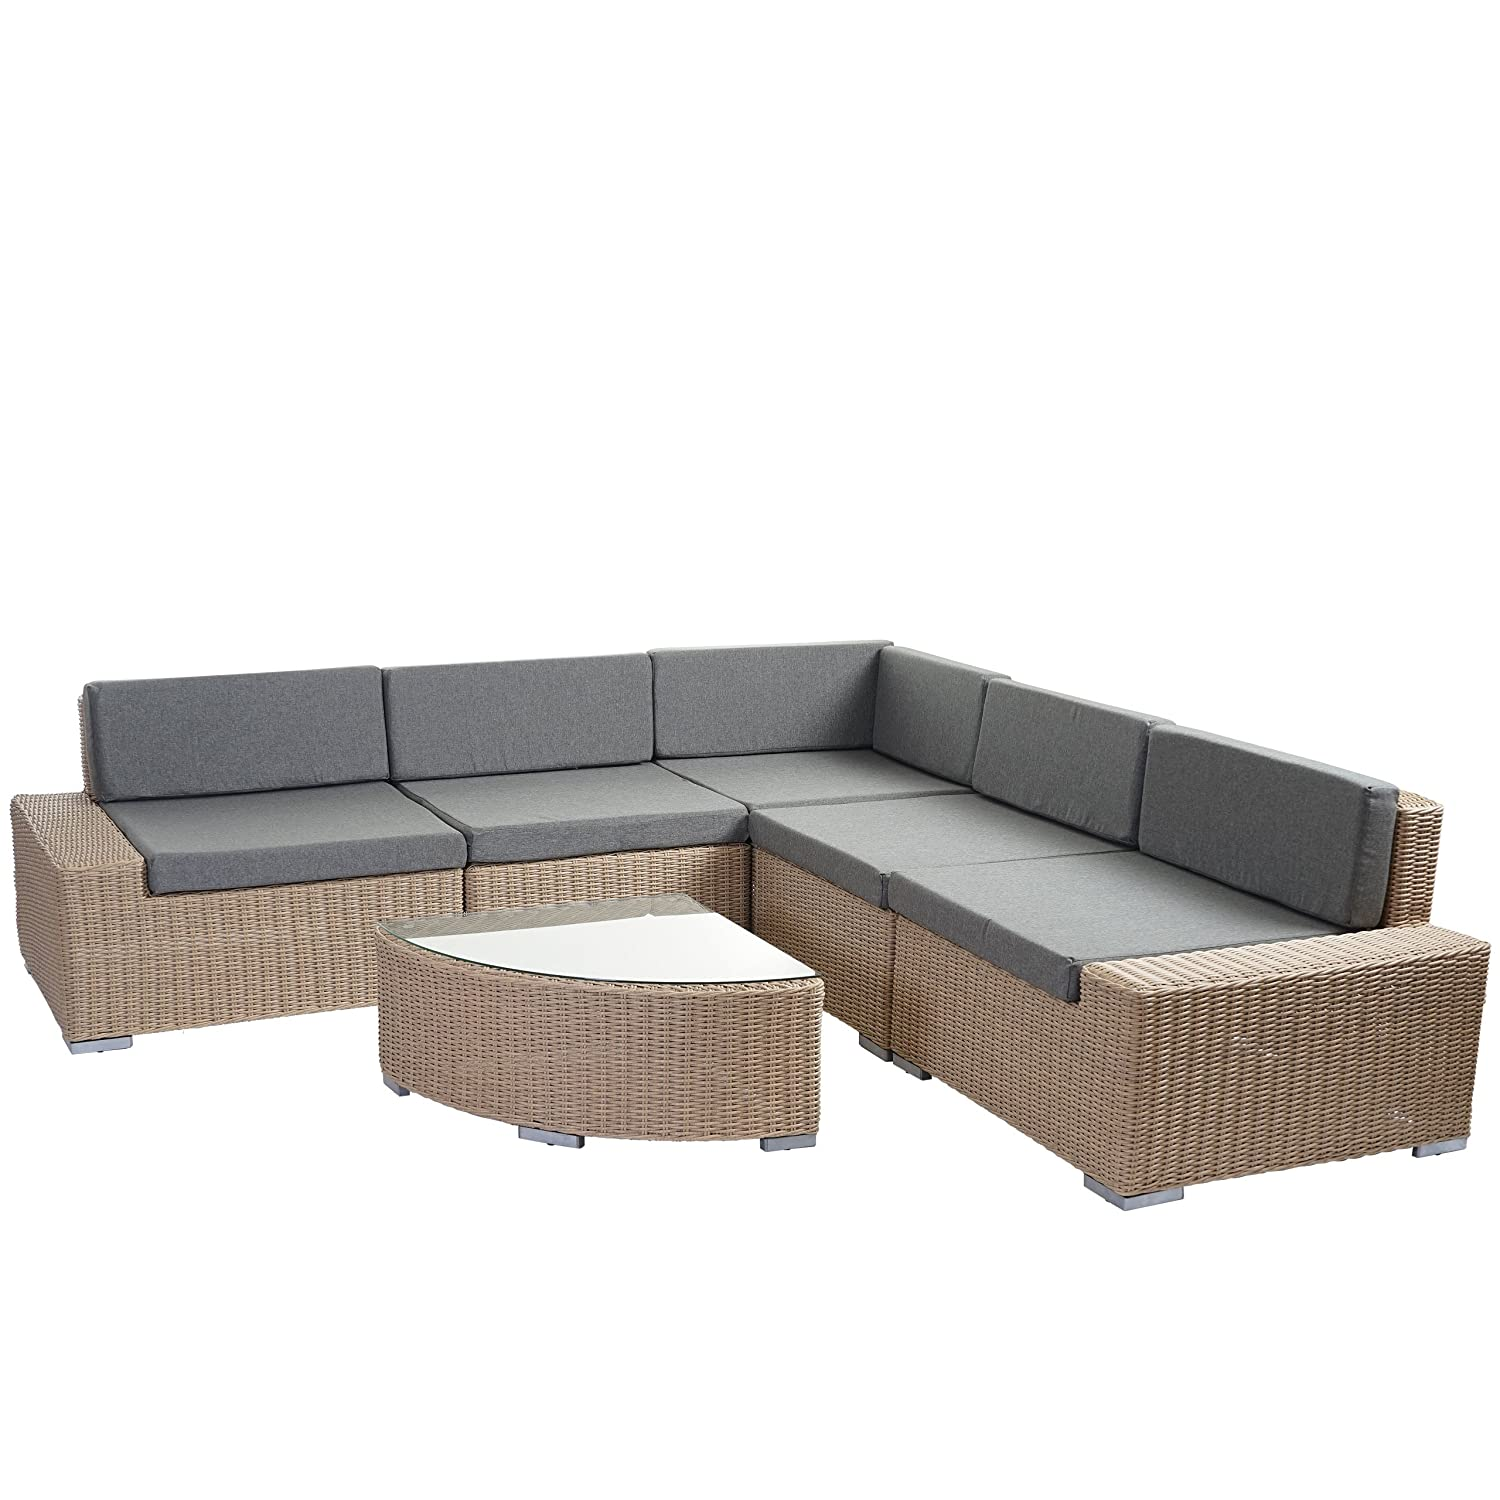 poly rattan garnitur sora gartengarnitur sitzgruppe lounge set alu hellbraun halbrundes. Black Bedroom Furniture Sets. Home Design Ideas